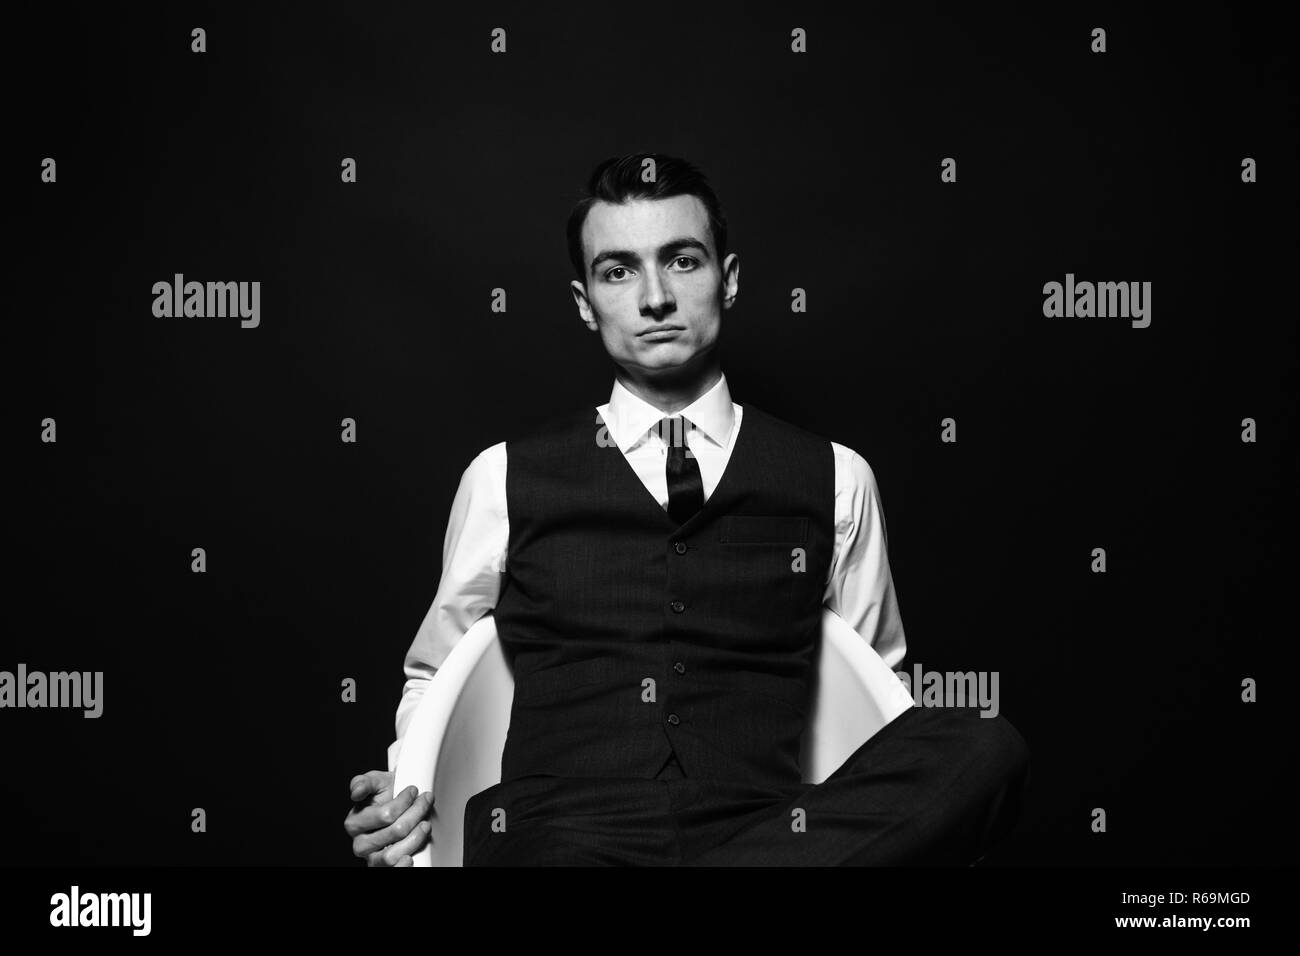 Close up black and white portrait of a young man in a white shirt, black tie and vest, sitting and seriously looking at the camera, against plain stud - Stock Image